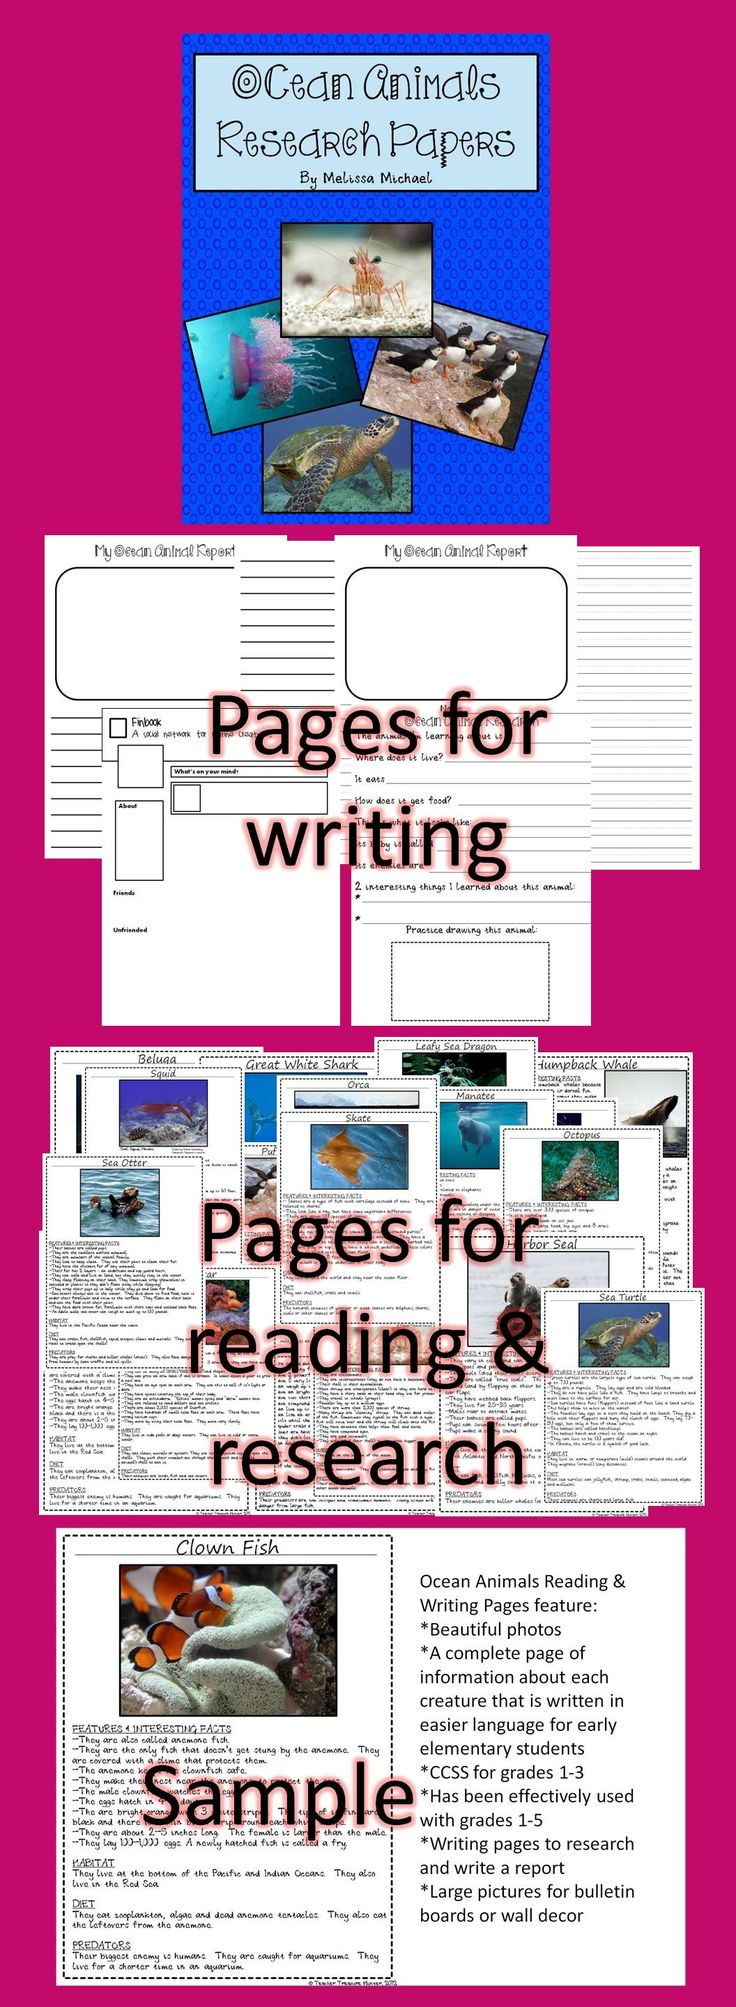 turtle research papers Loggerhead sea turtle essays: over 180,000 loggerhead sea turtle essays, loggerhead sea turtle term papers, loggerhead sea turtle research paper, book reports 184.